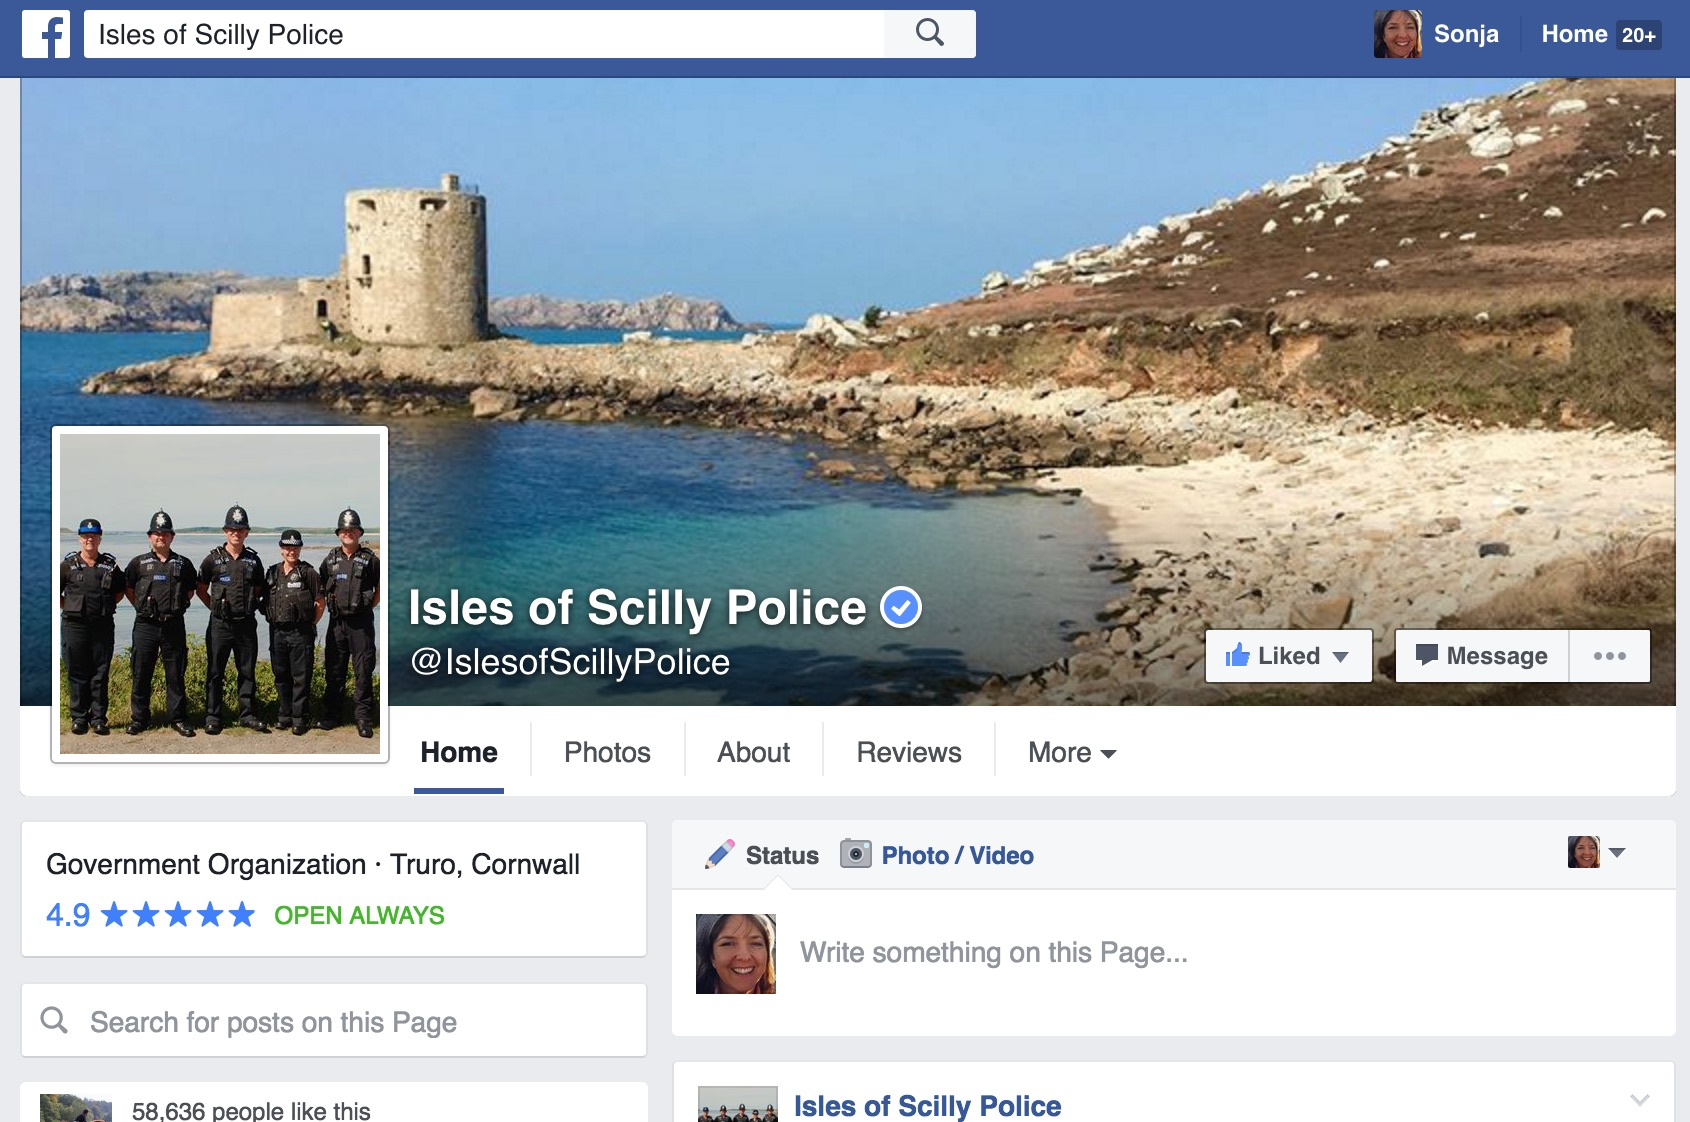 Isles of Scilly Police Facebook